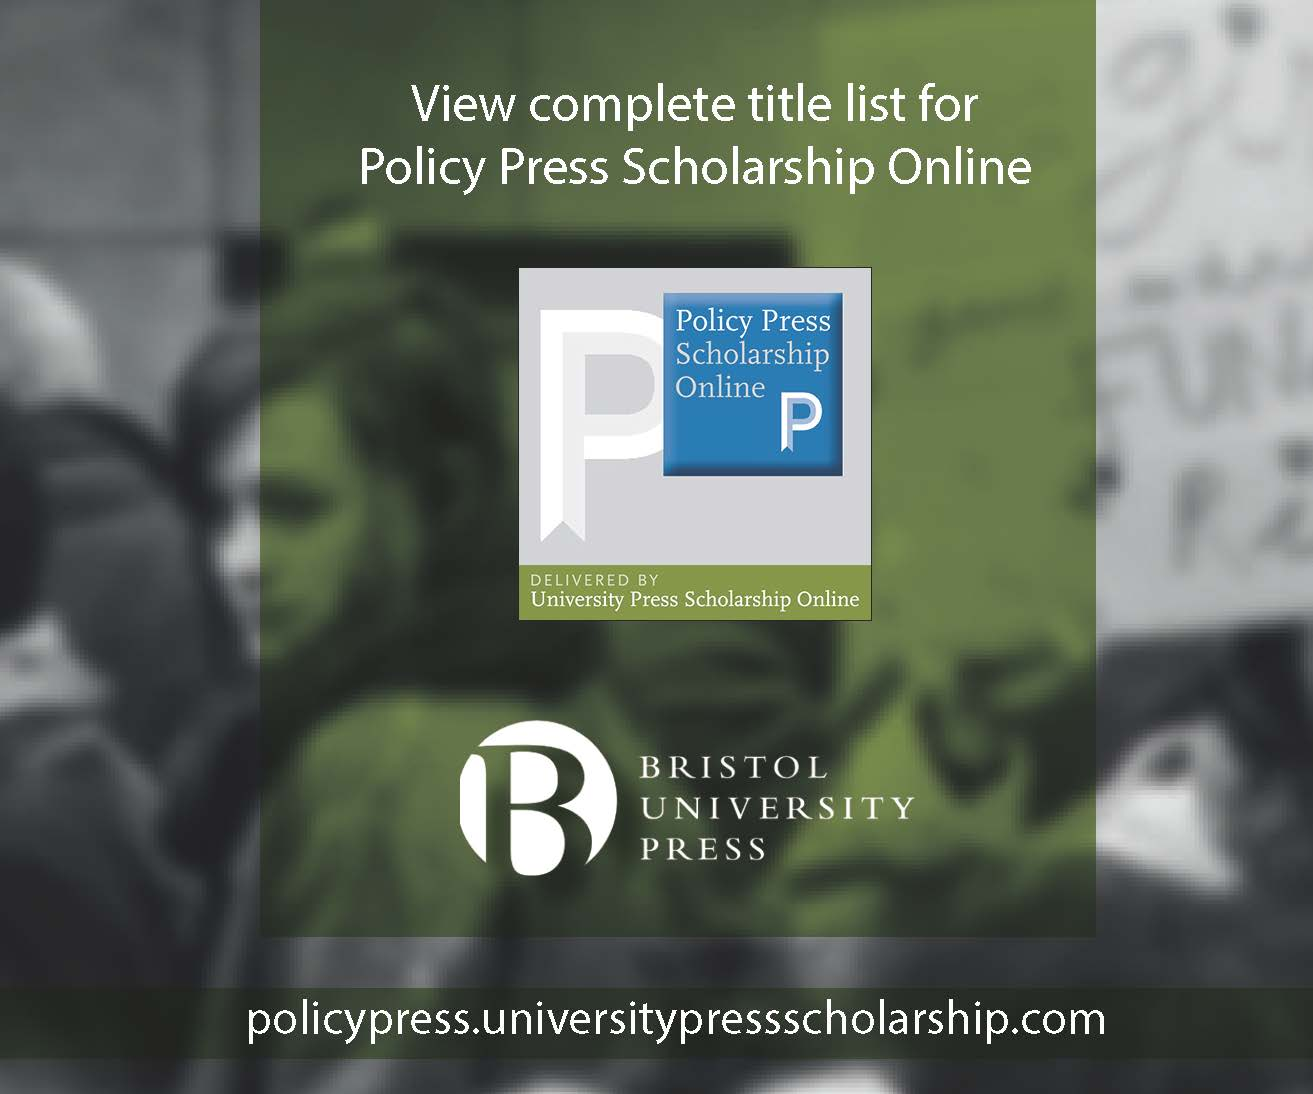 New Policy Press Scholarship Online Upload